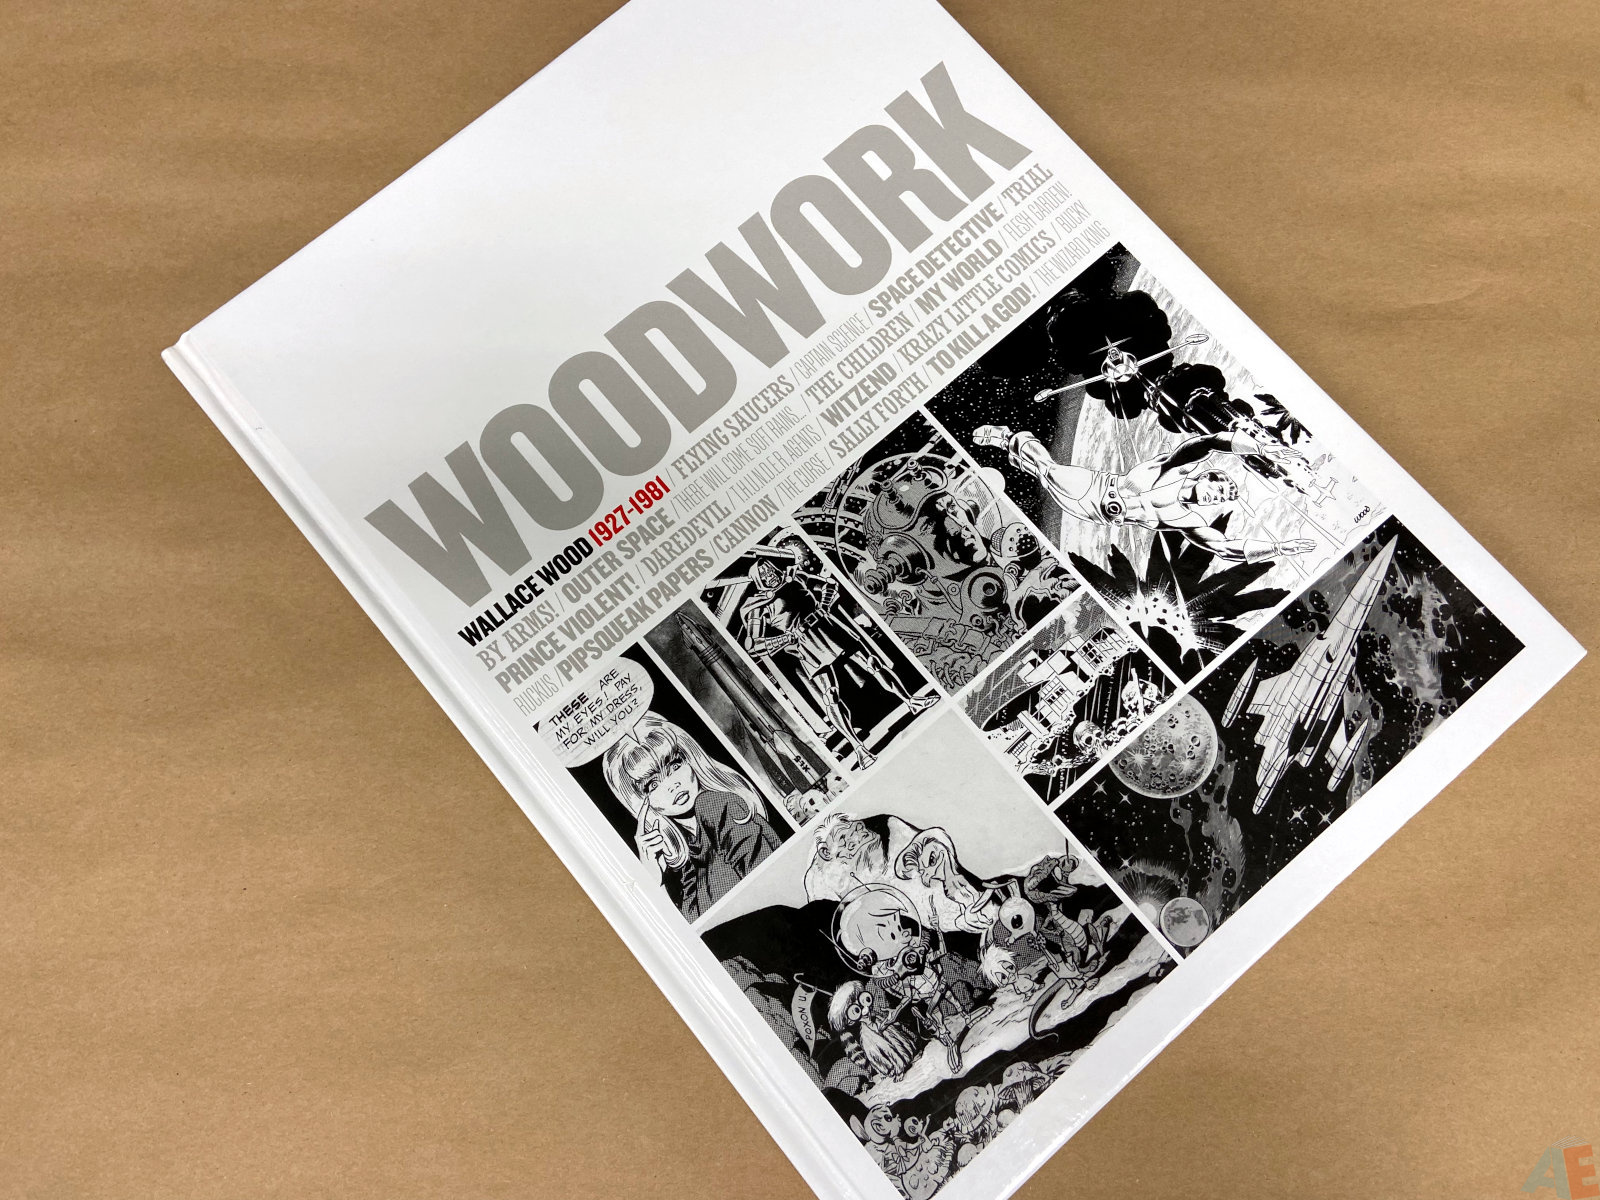 Woodwork Wallace Wood 1927 1981 interior 27